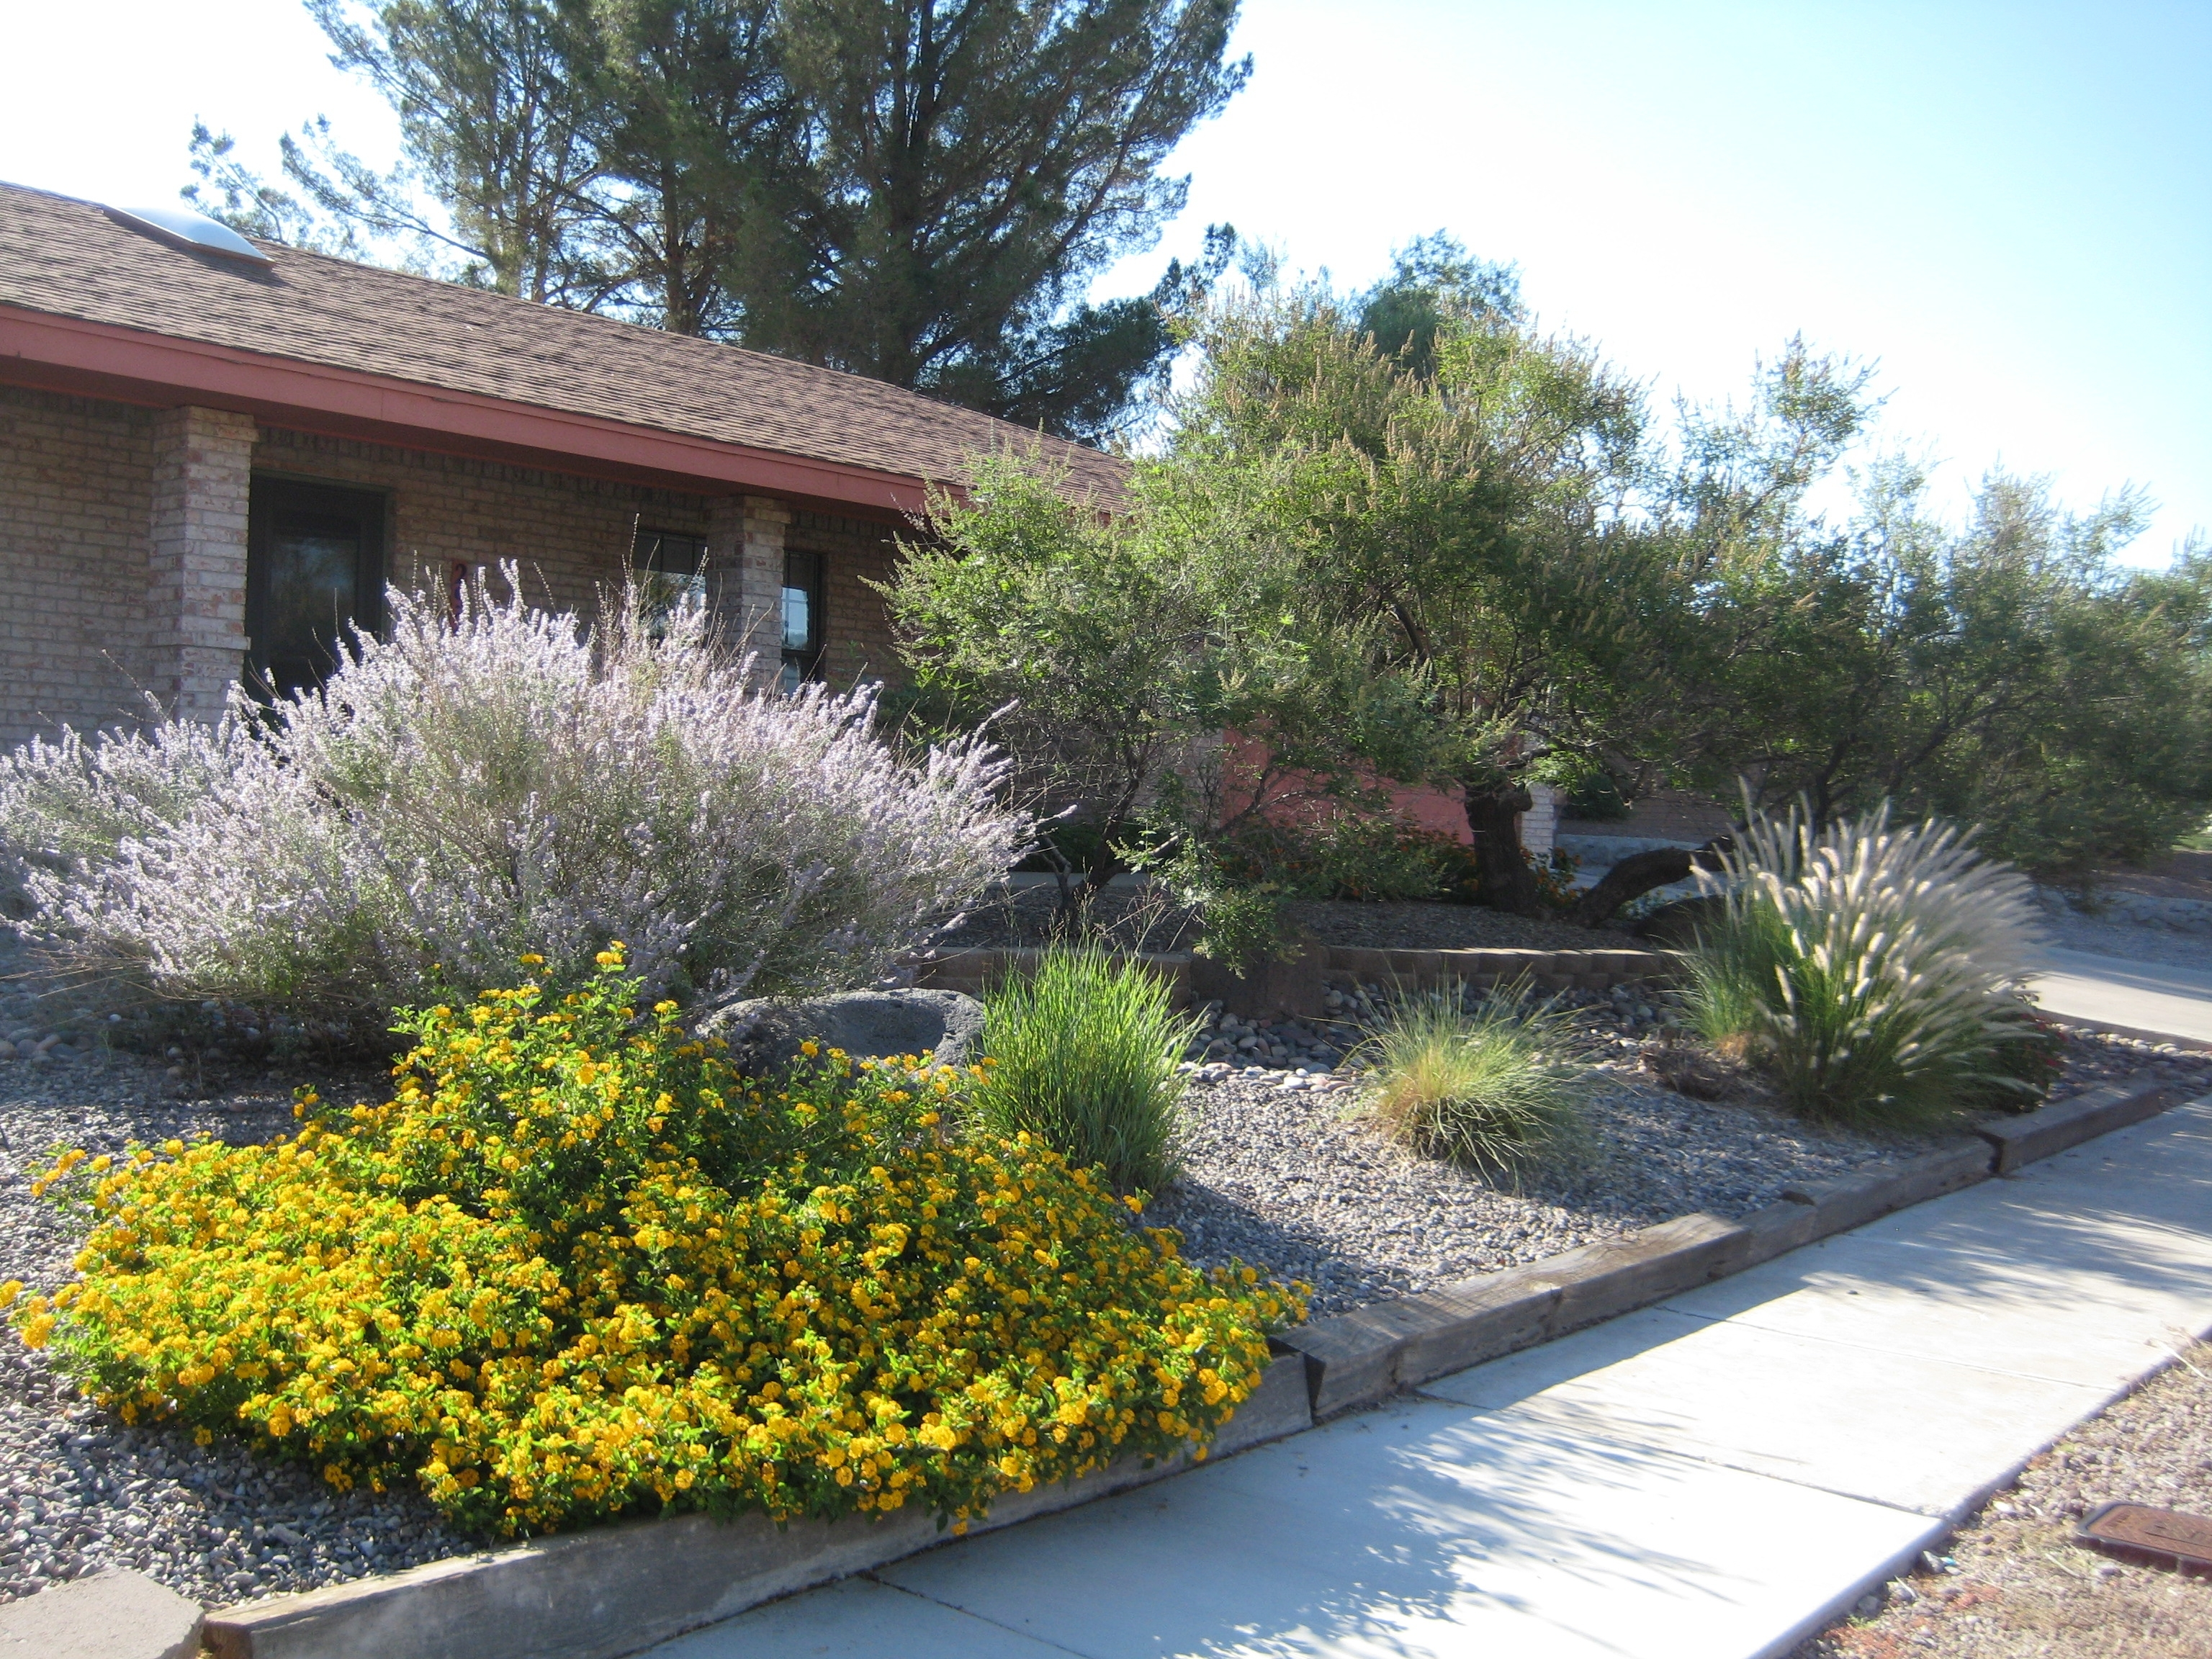 Xeriscaping Extension Master Gardener Within Xeriscape Landscaping Knowing About Xeriscape Landscaping